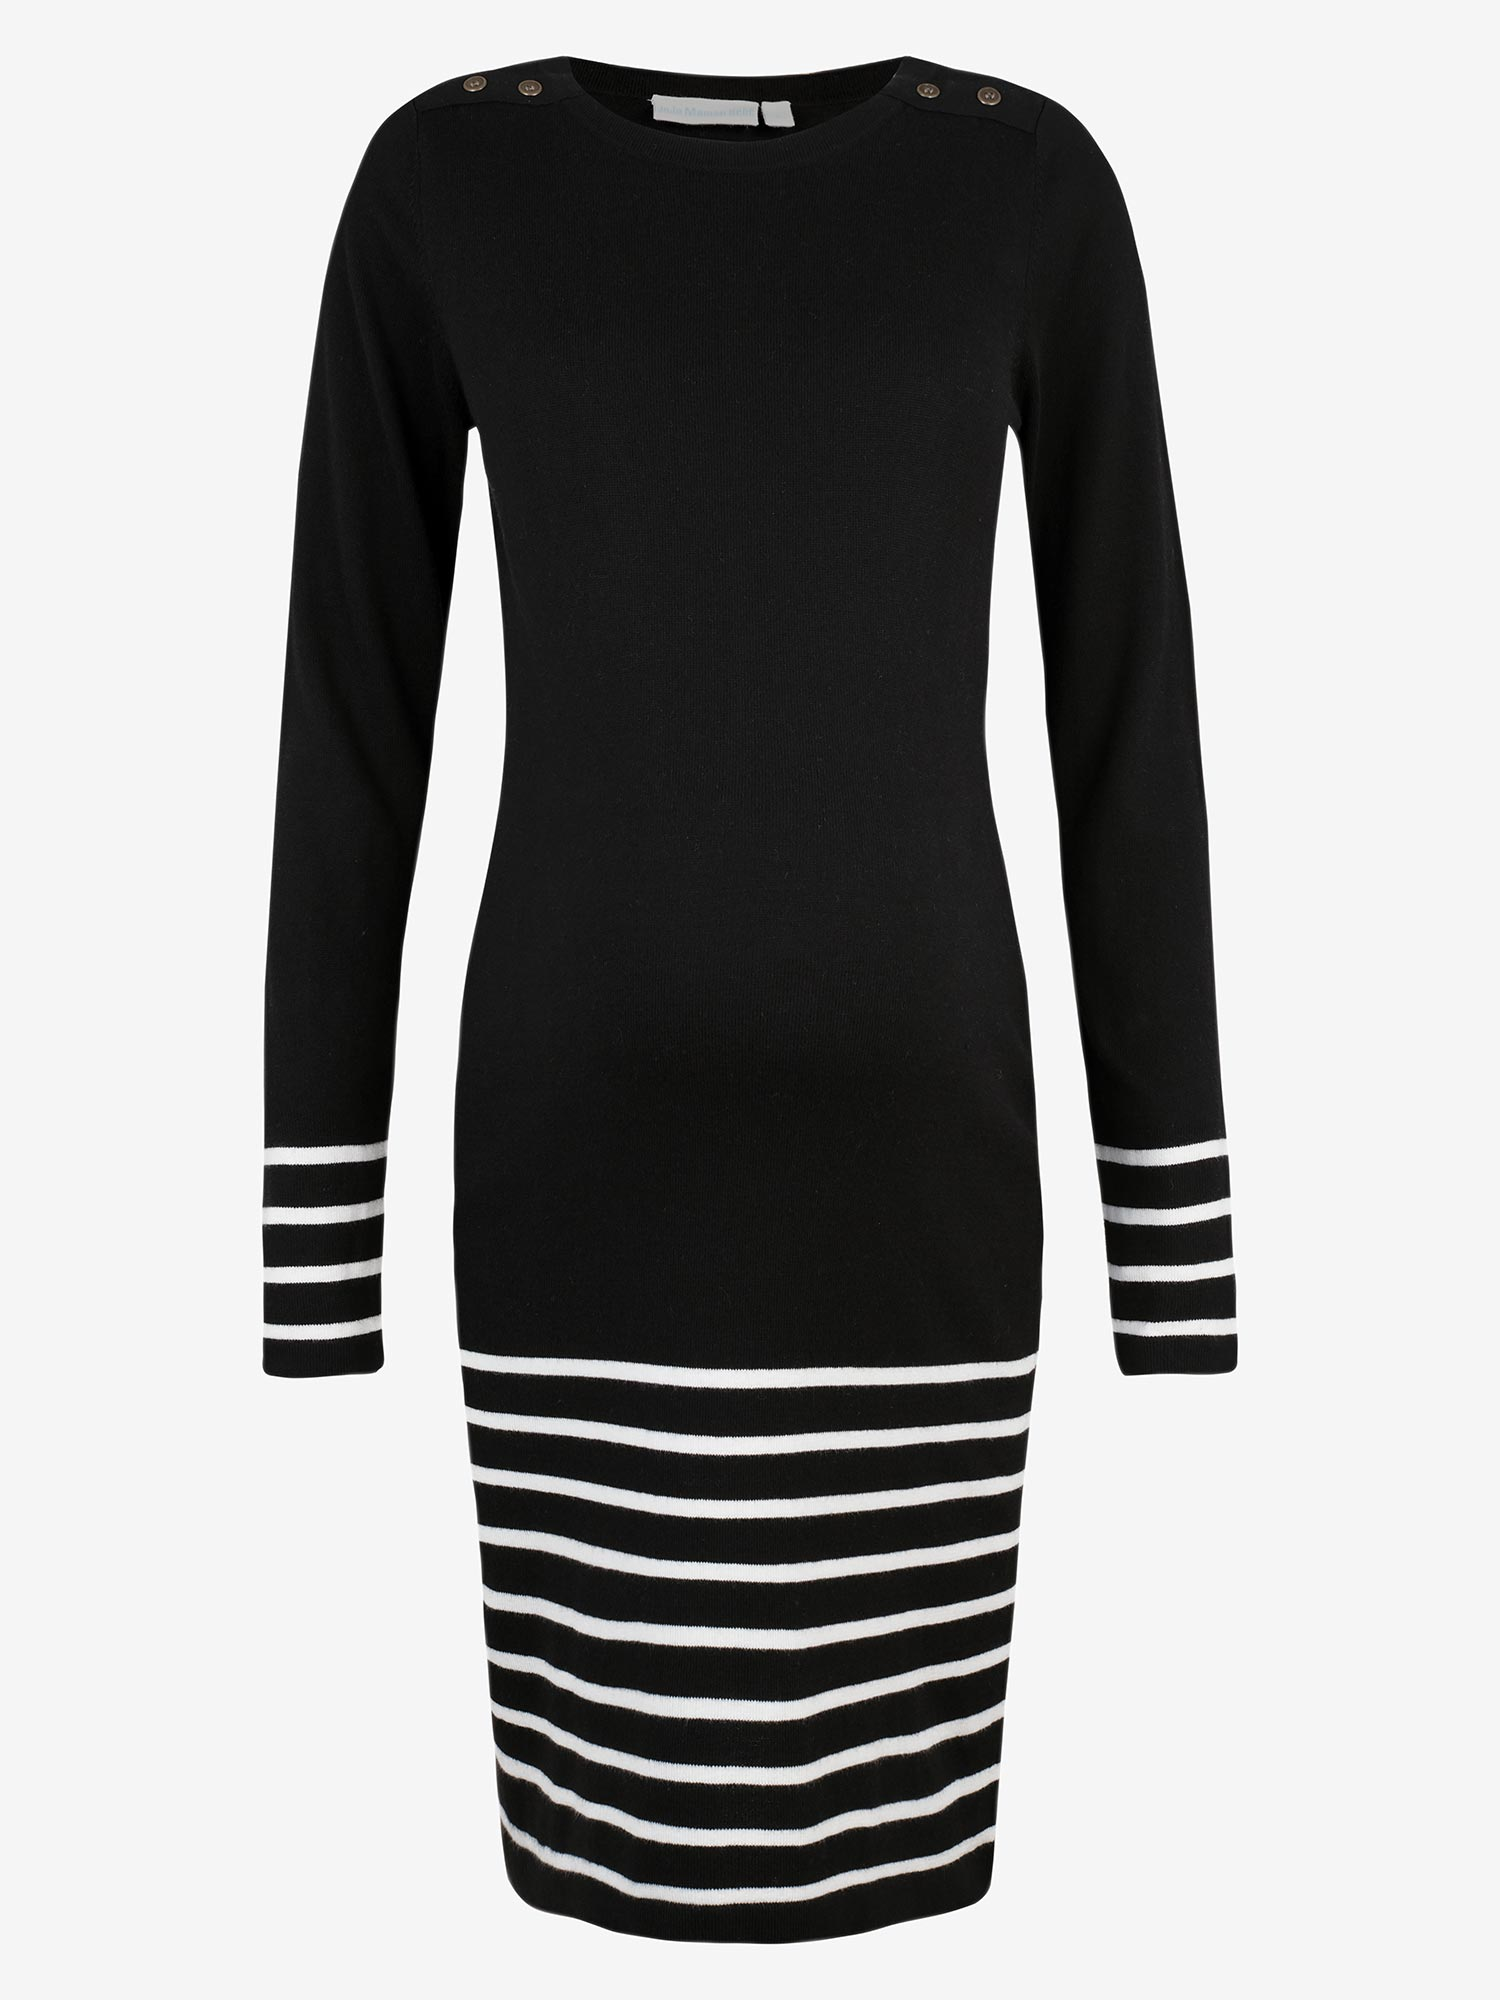 Black Stripe Knitted Maternity Dress